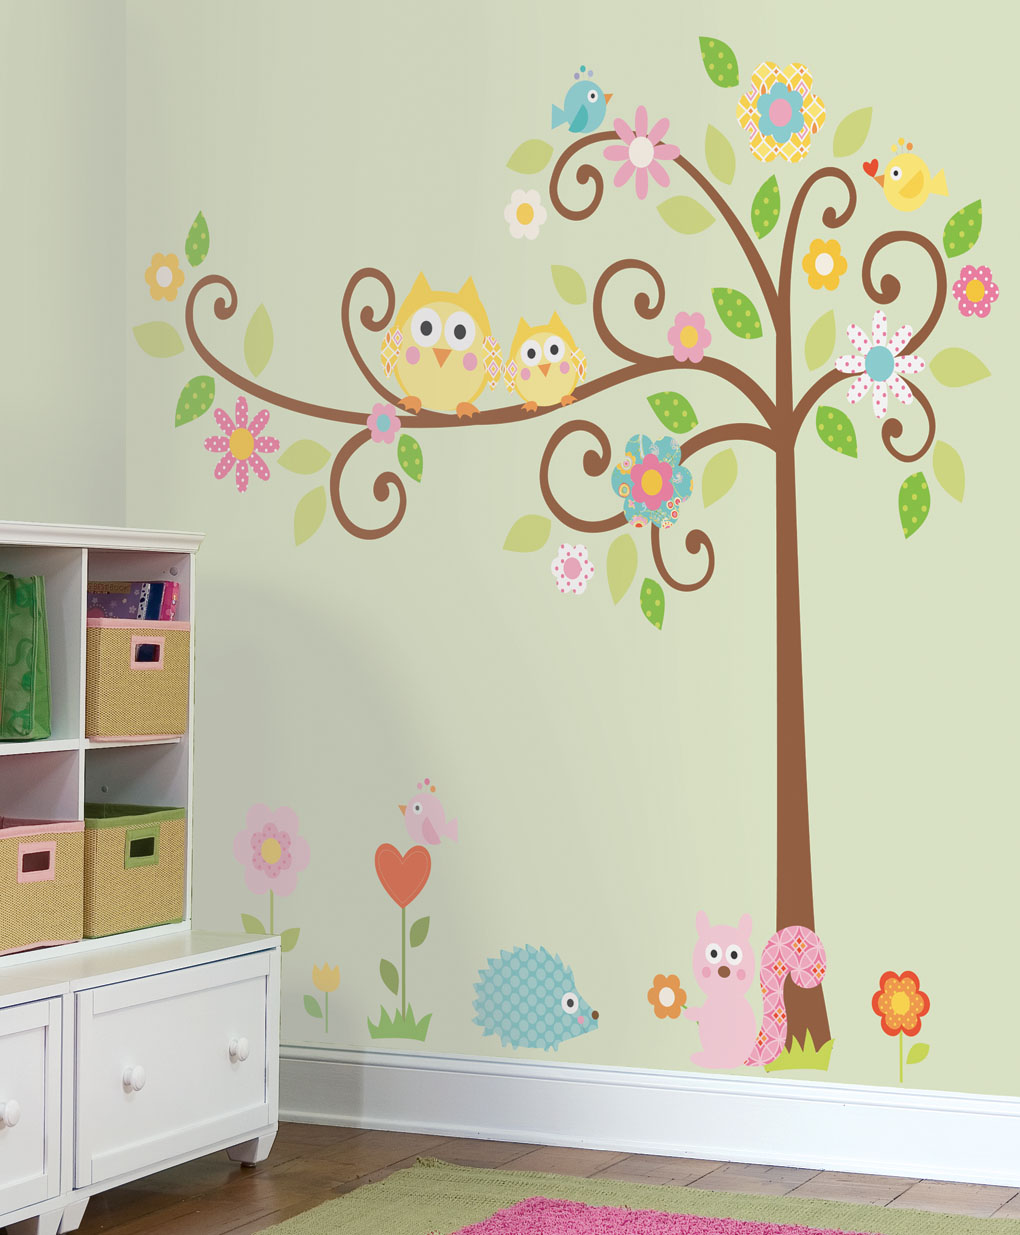 Wall Decor Childrens Rooms : Wall decals kids art decor